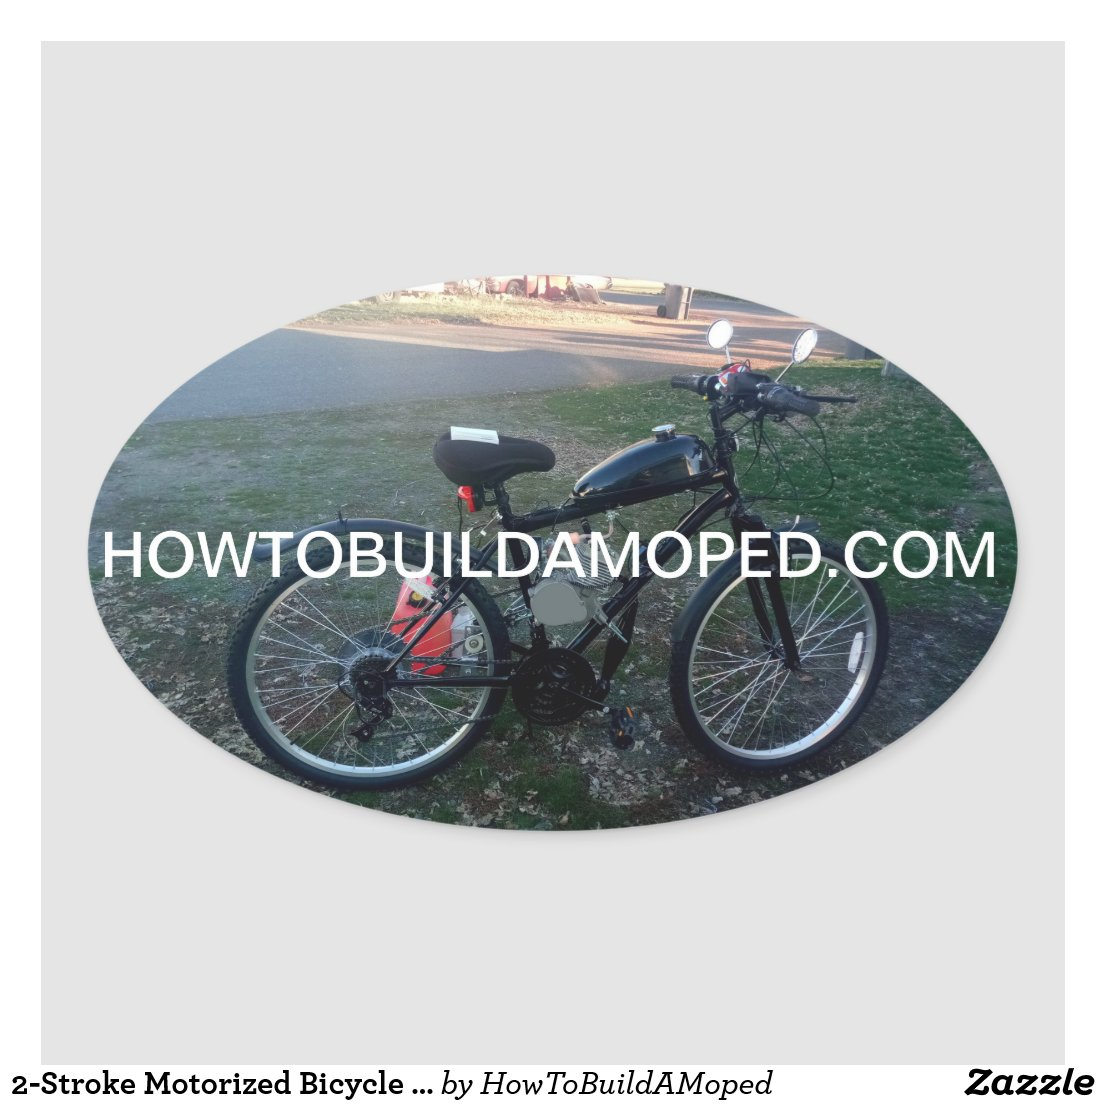 2-Stroke 80cc 66cc 48cc 77cc                 clutch cover sticker Motorized Bicycle Engine Decal Kit                 Sticker HowToBuildAMoped.com